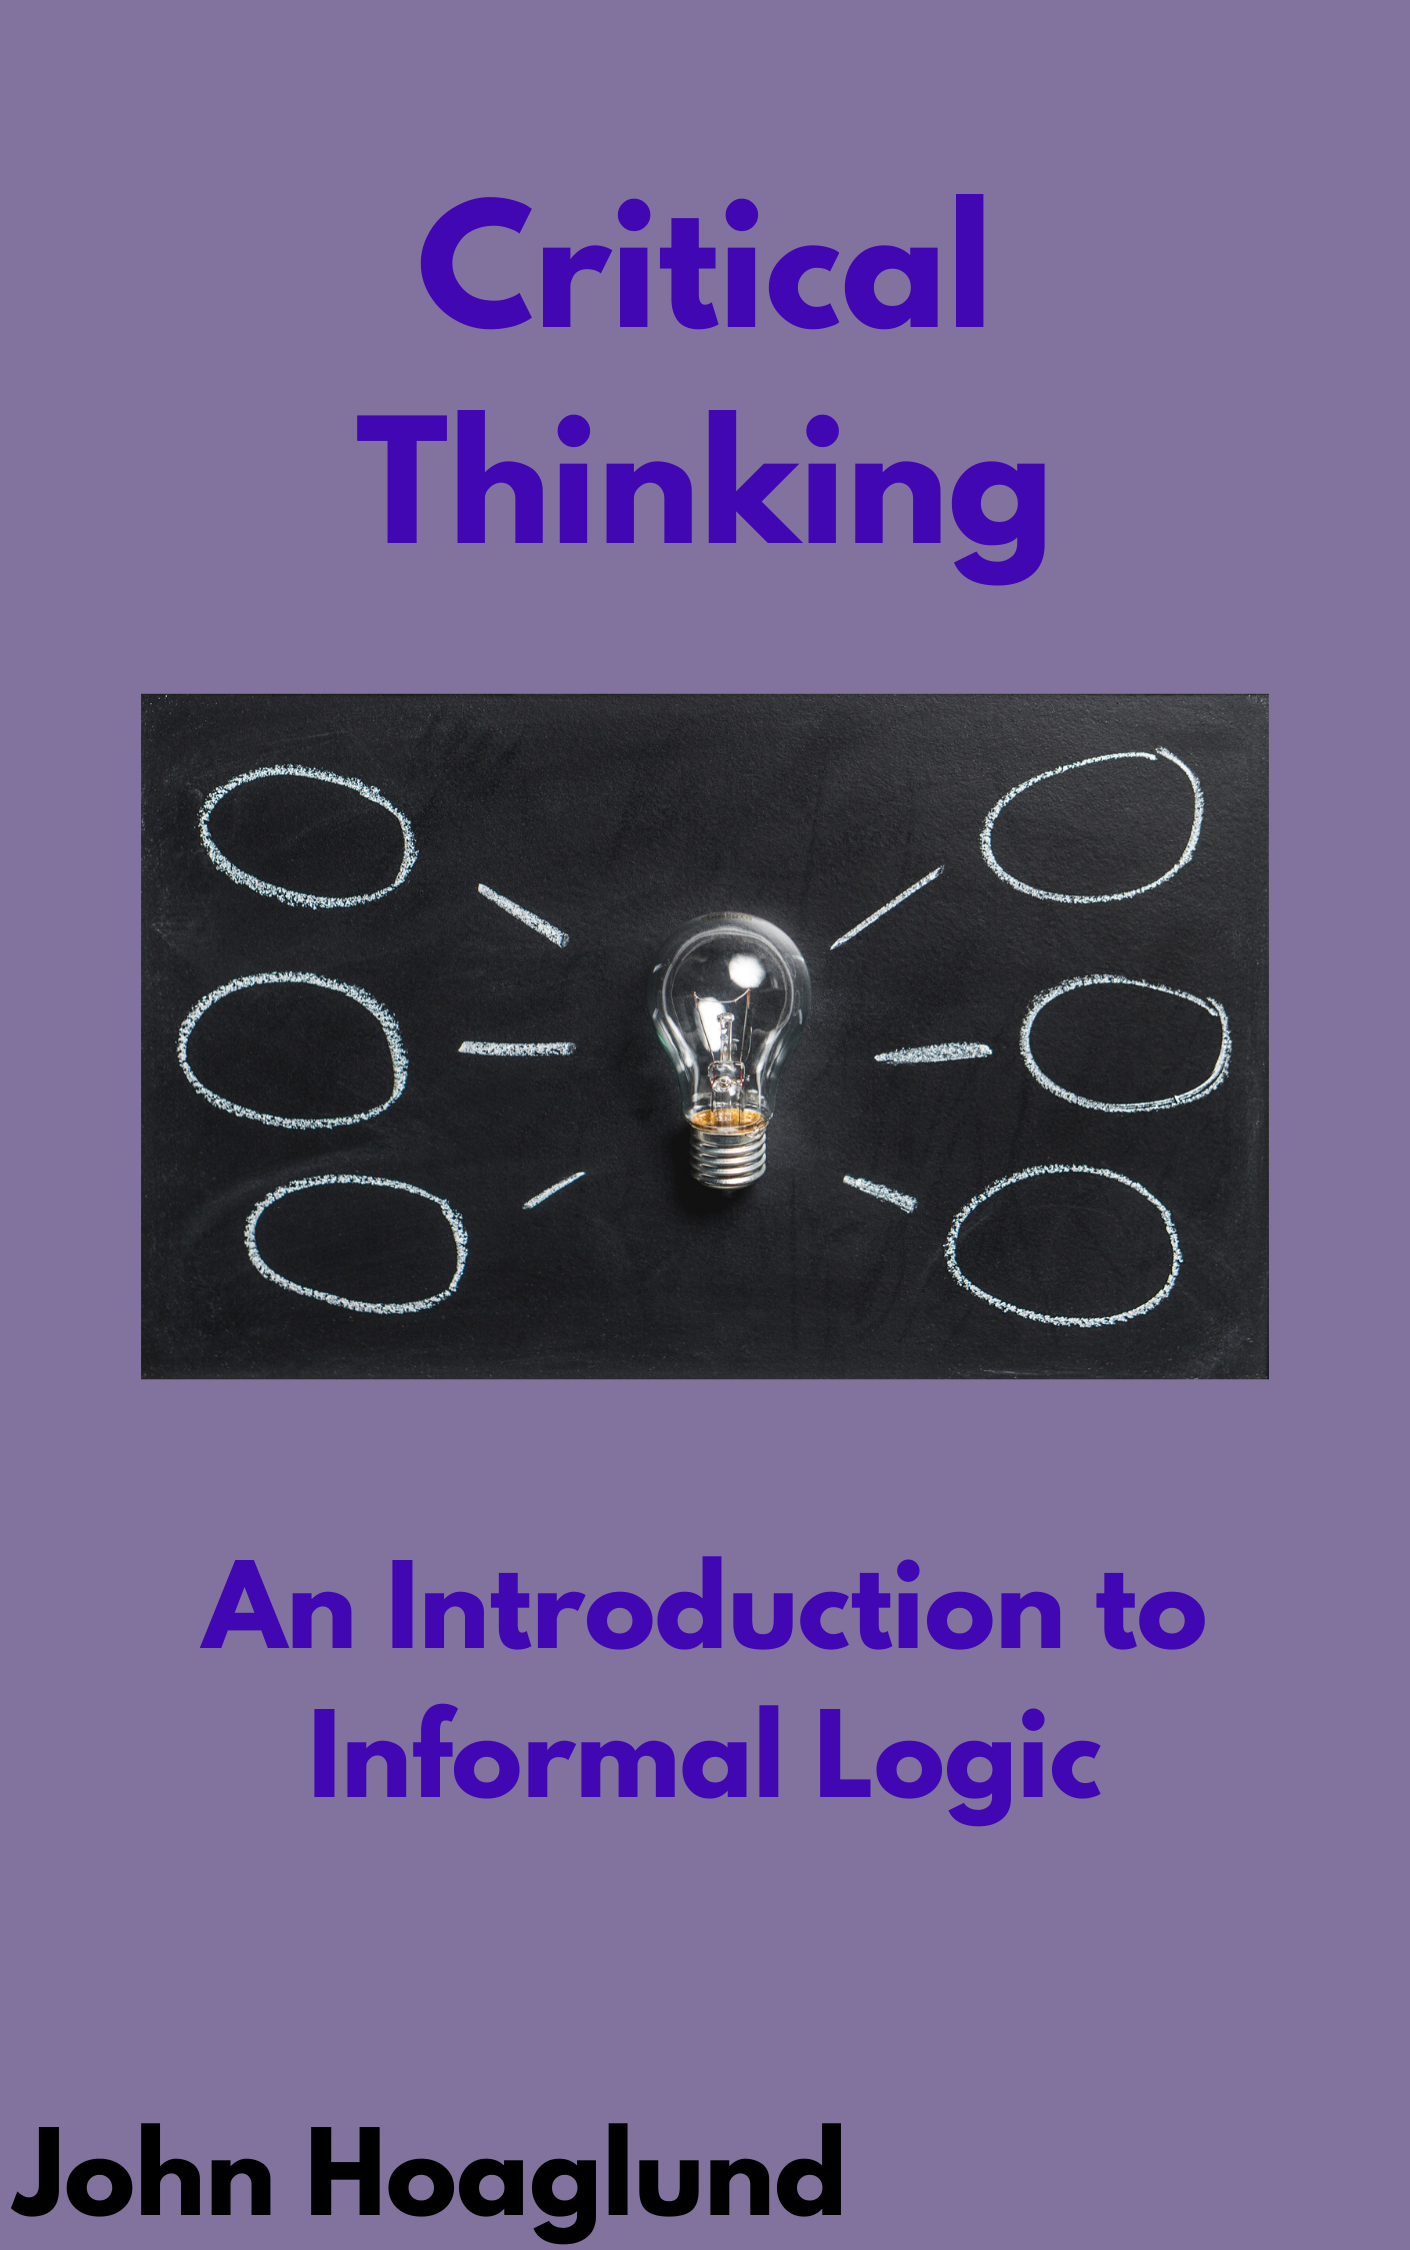 Critical Thinking: An Introduction to Informal Logic